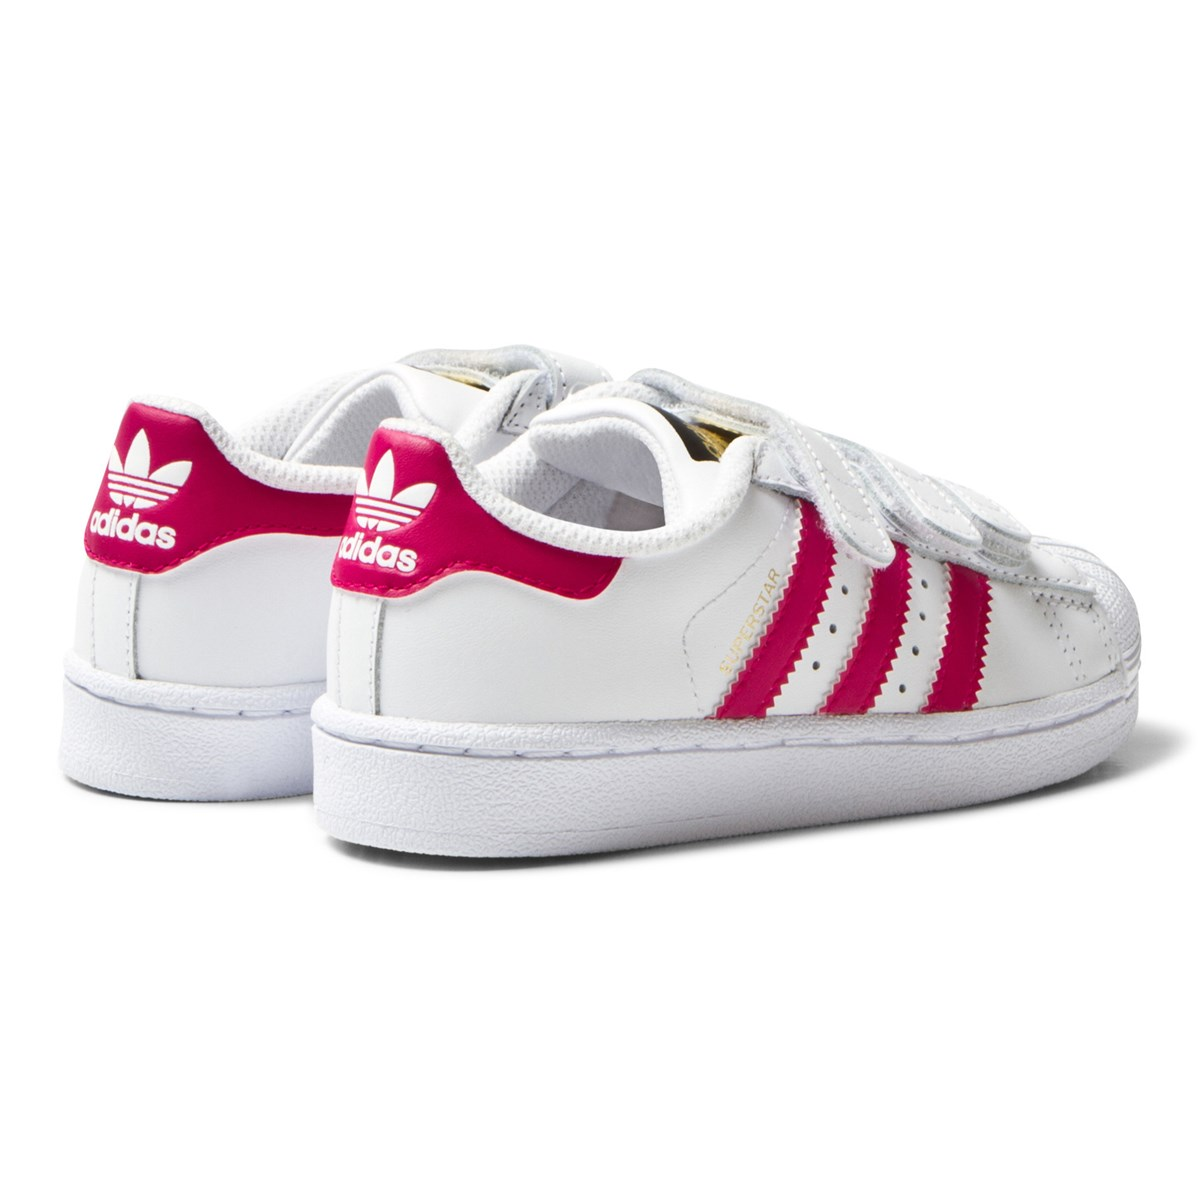 adidas Originals Superstar Borrelås Sko Hvit og Rosa